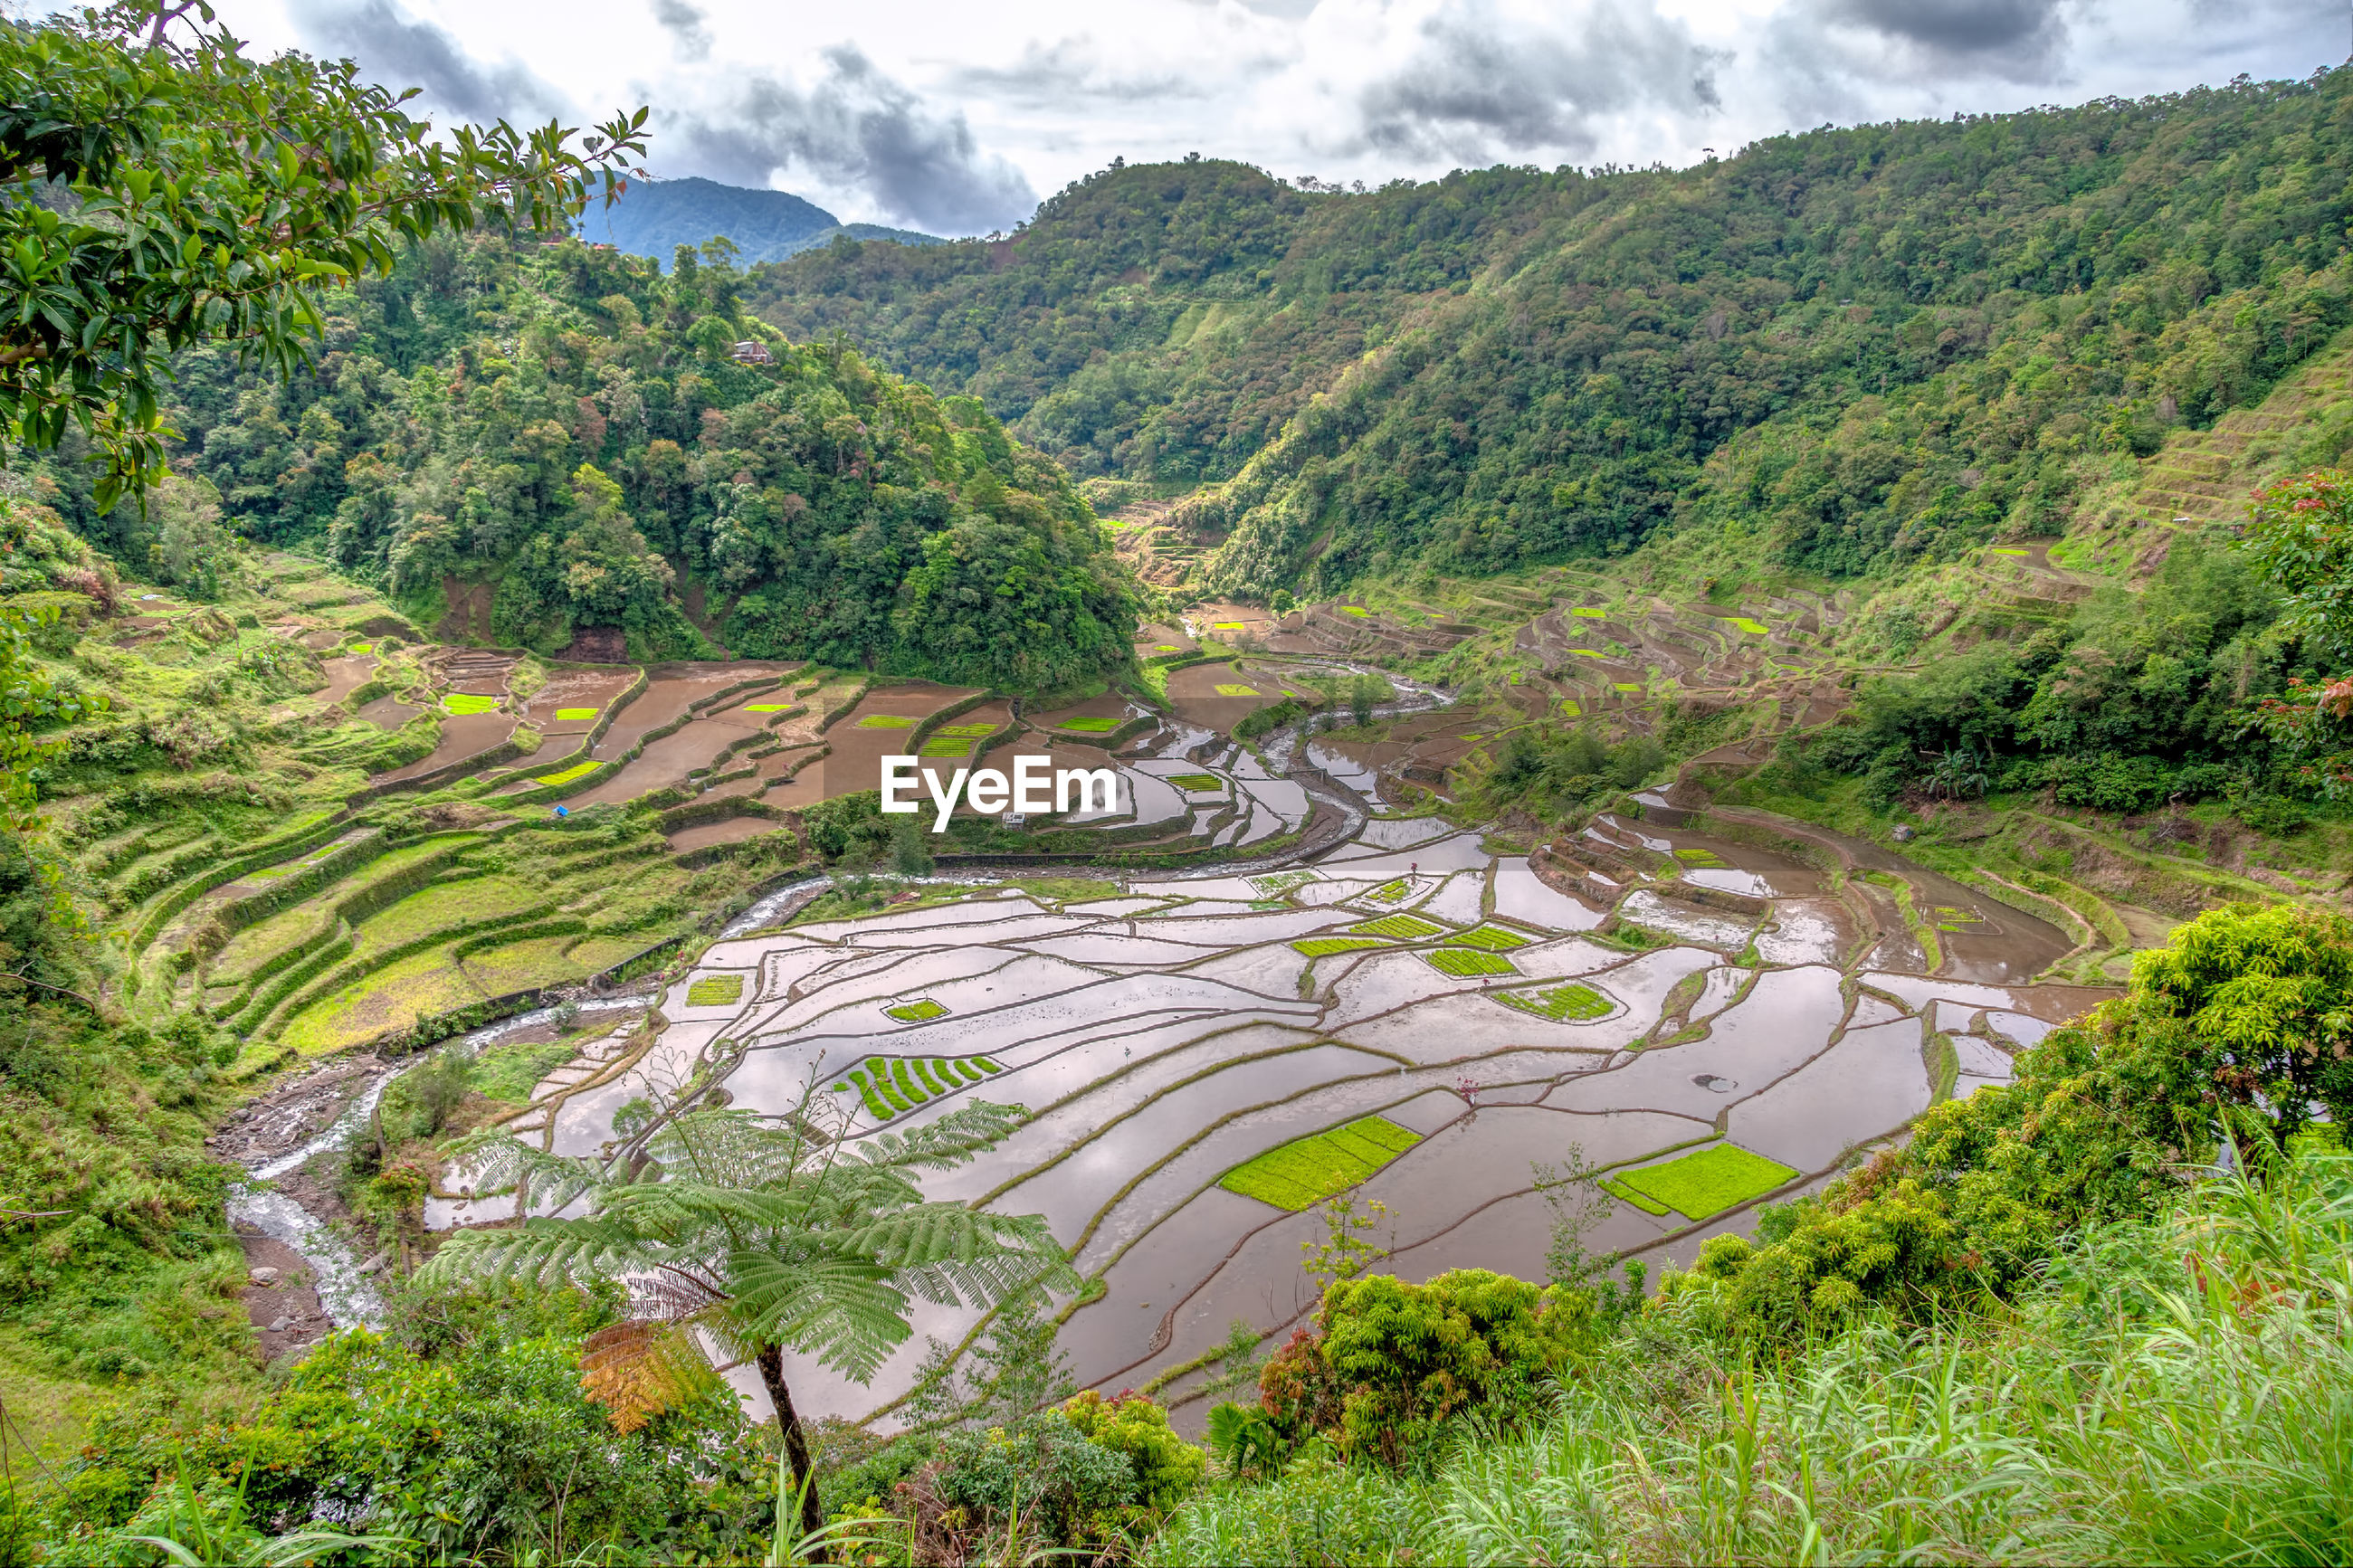 SCENIC VIEW OF RICE FIELD AGAINST TREES AND MOUNTAINS